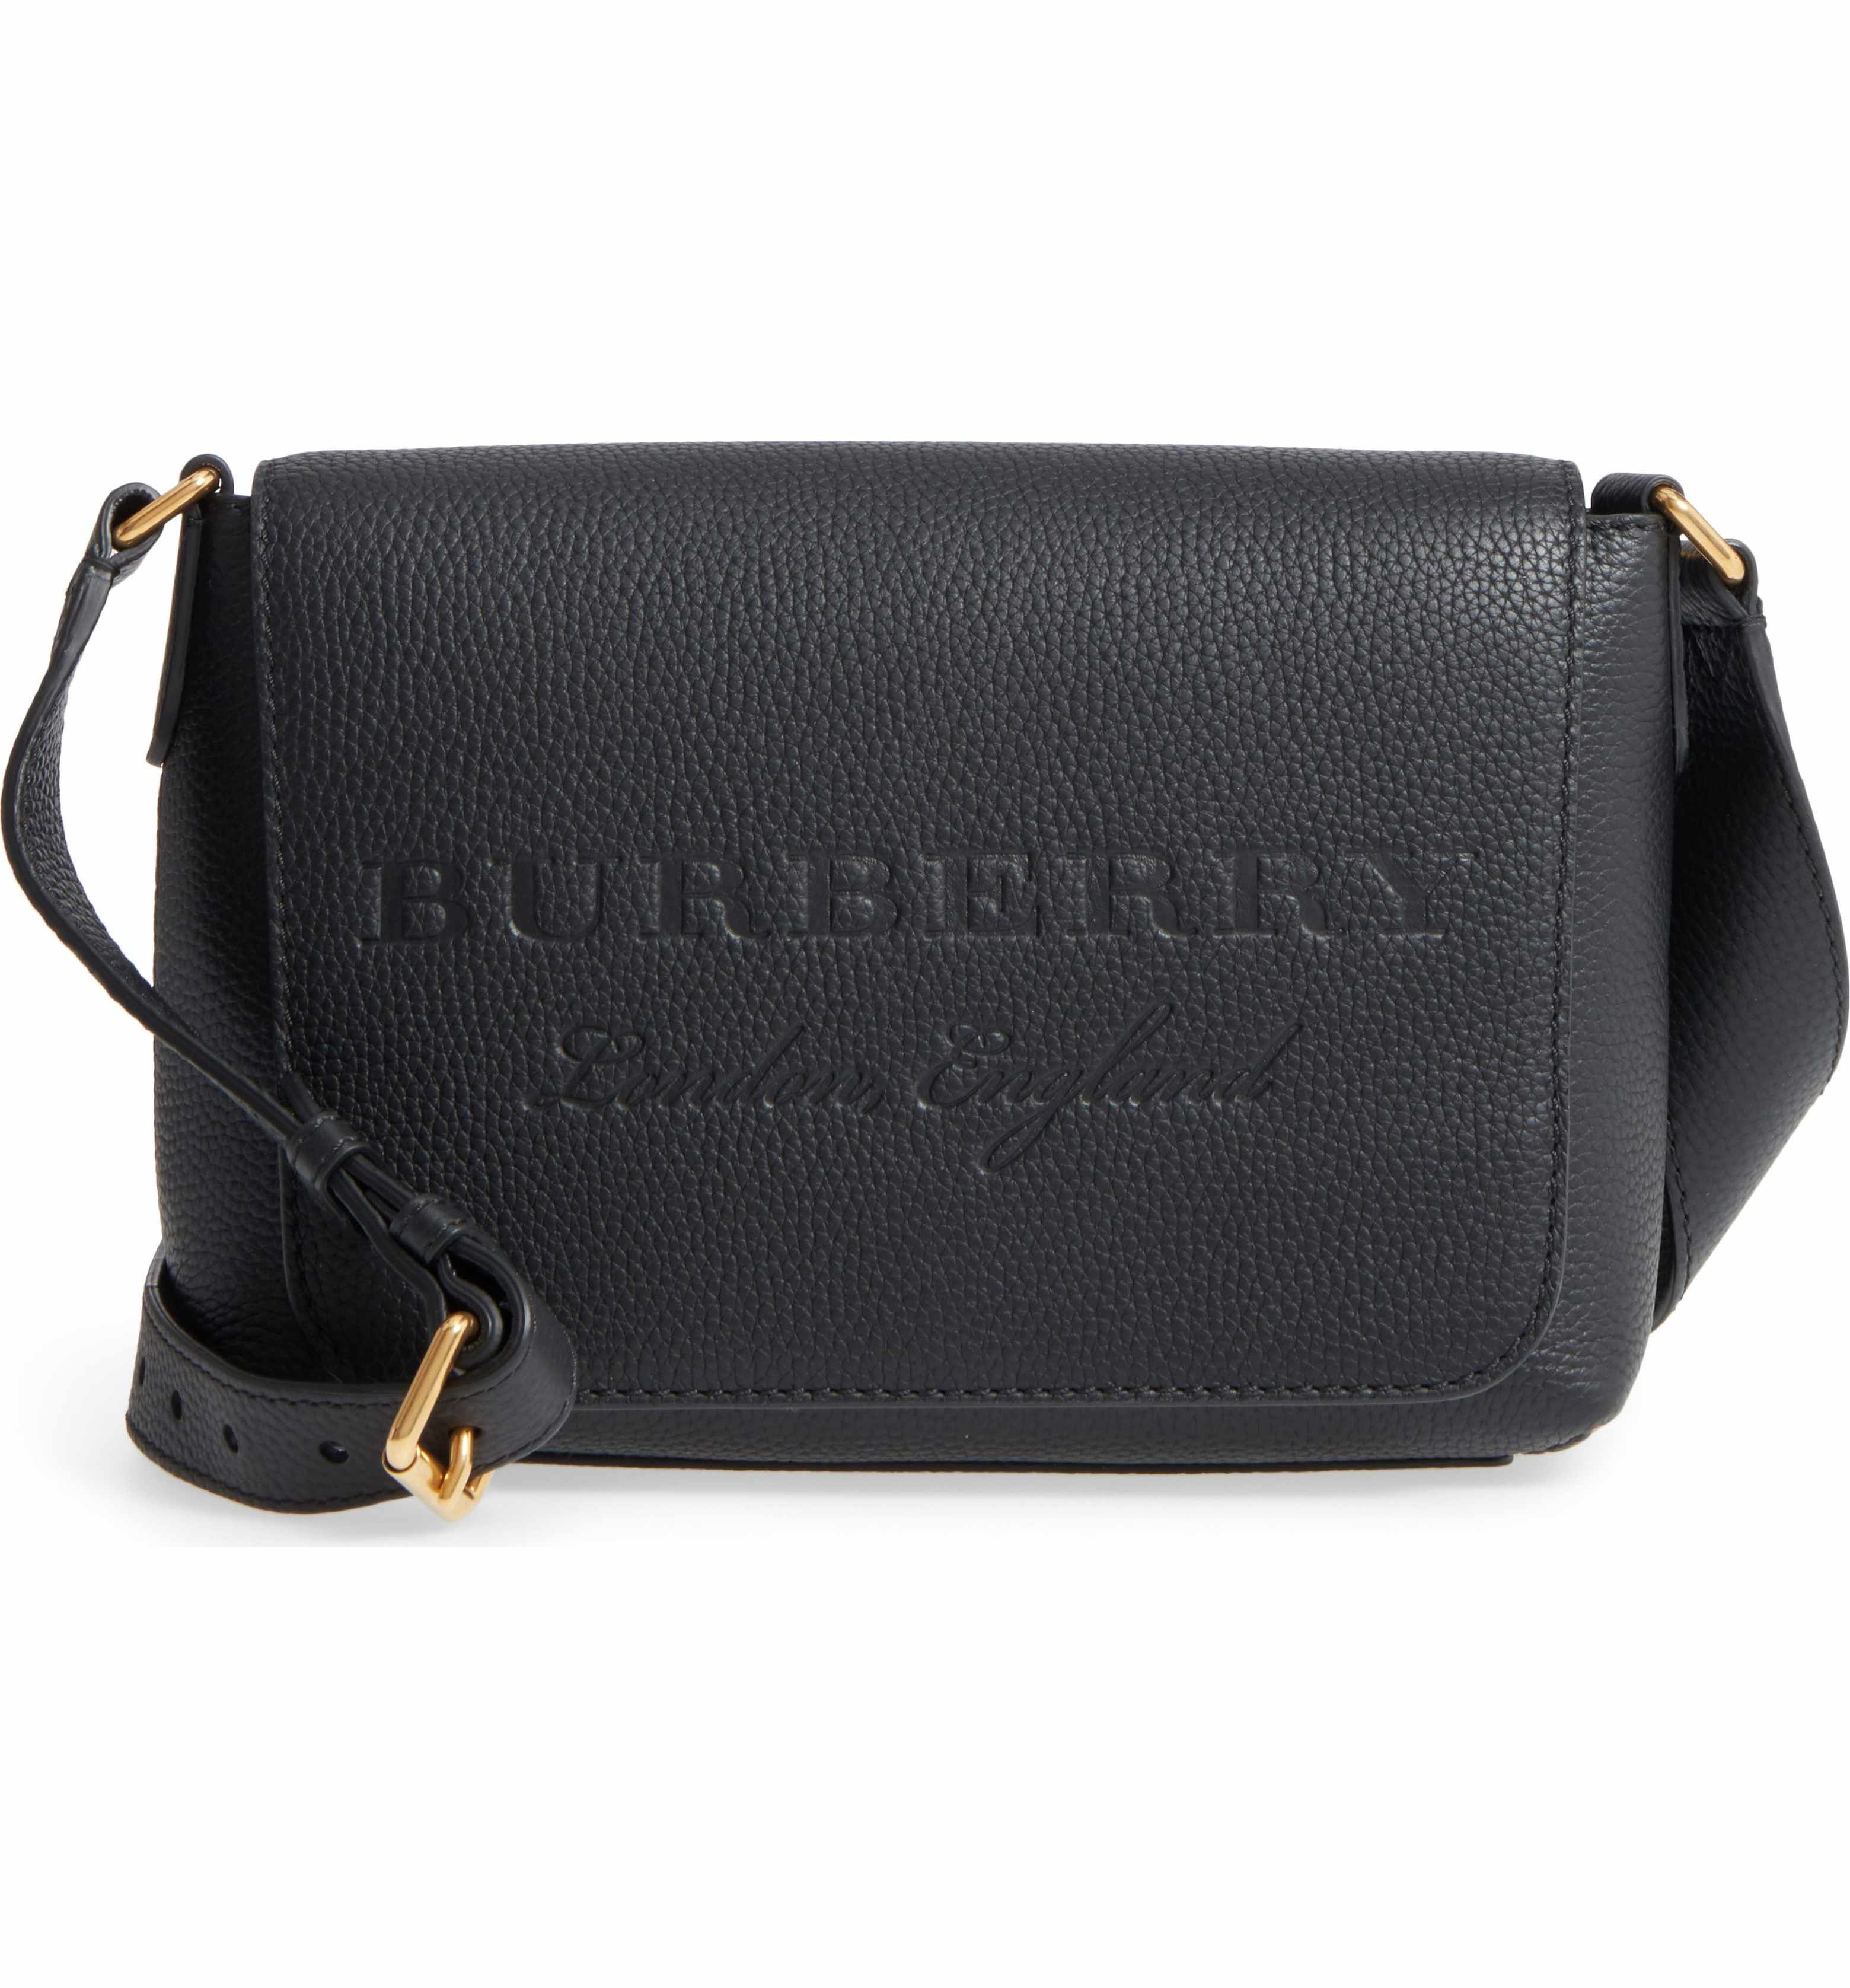 b82ffa626b32 Main Image - Burberry Small Burleigh Leather Crossbody Bag